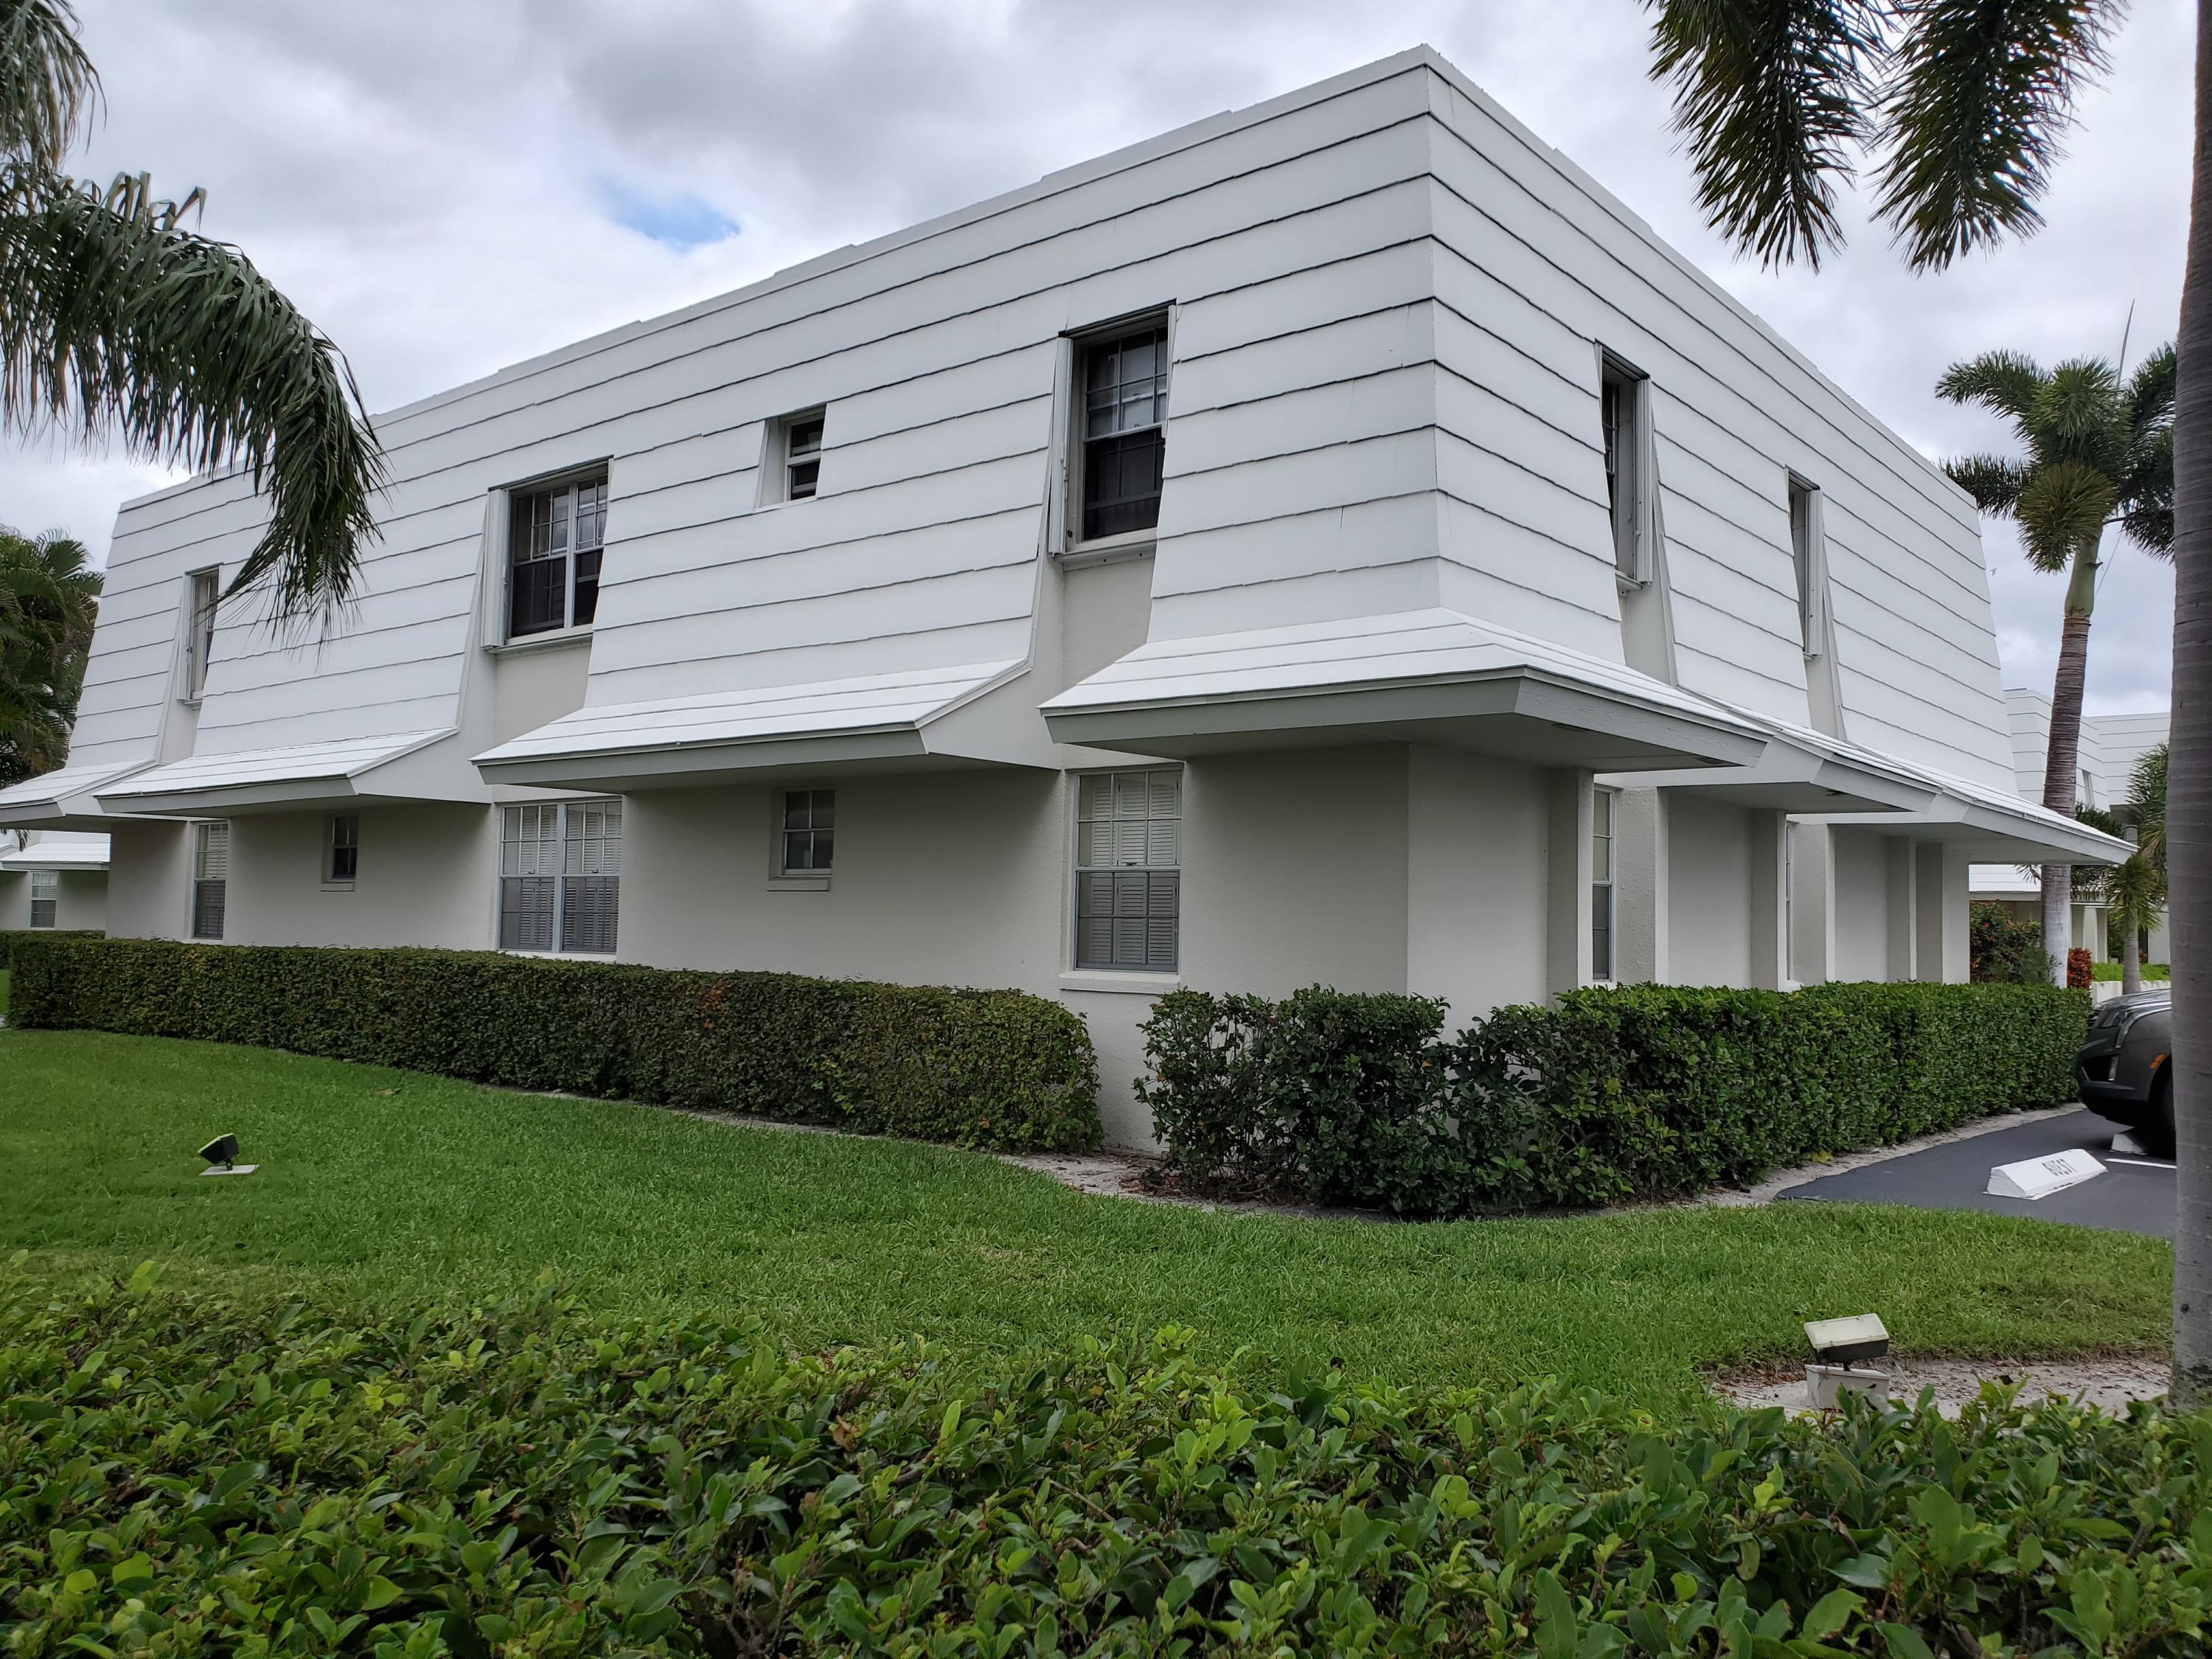 New Home for sale at 1251 Sugar Sands Blvd  in Singer Island